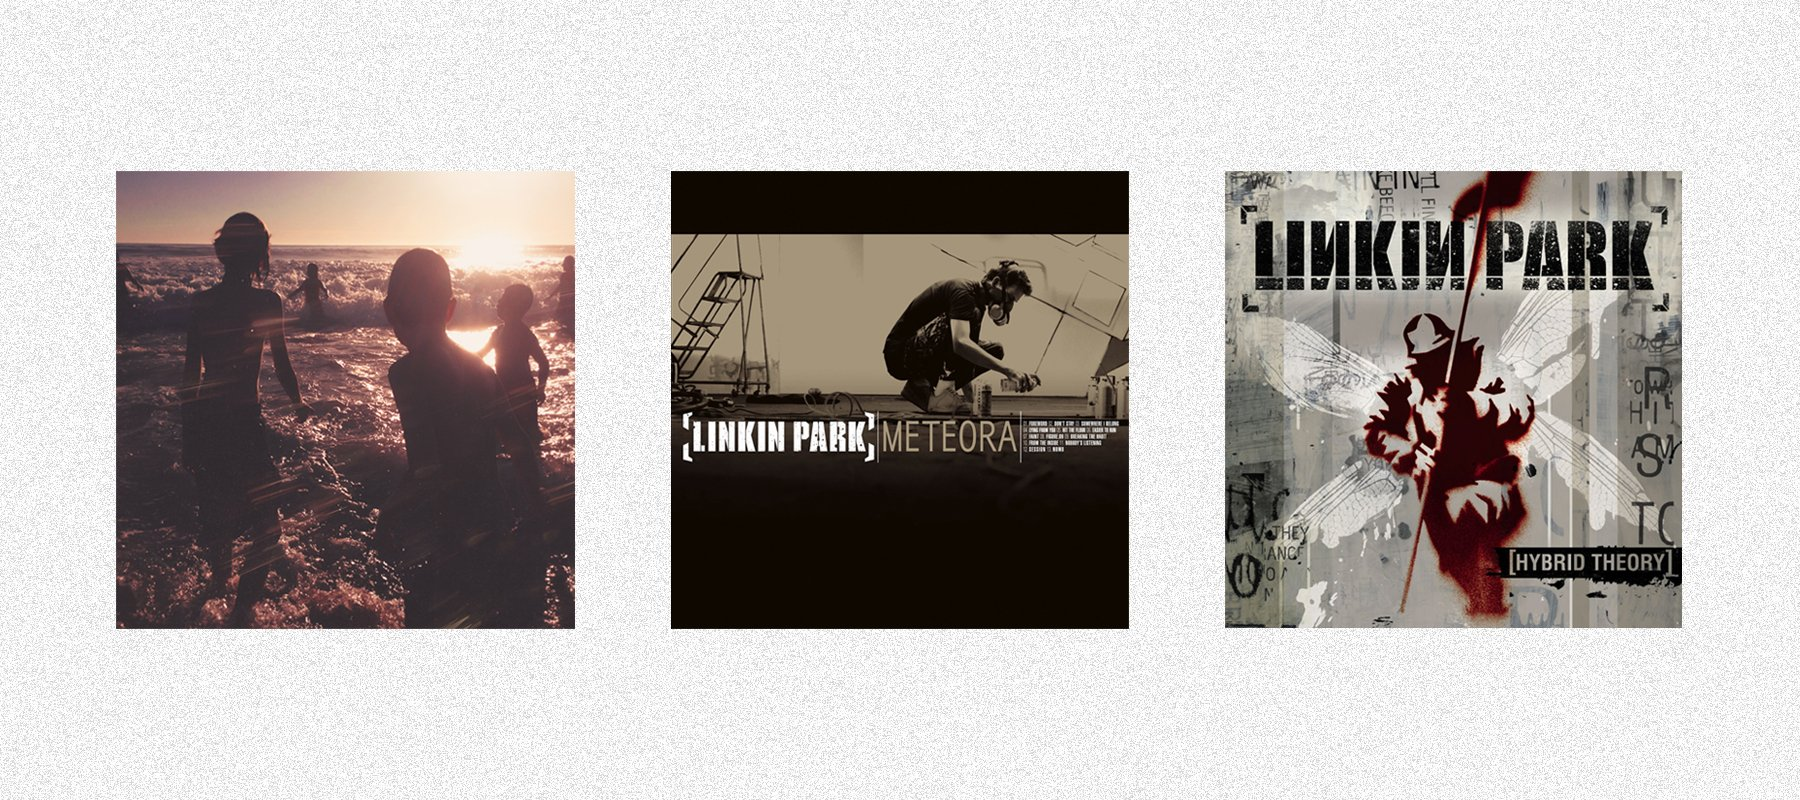 Get One More Light, Meteora, + Hybrid Theory on @AppleMusic - now $6.99 for a limited time: https://t.co/cUK4gUbK9H https://t.co/RGnkBj9f8G